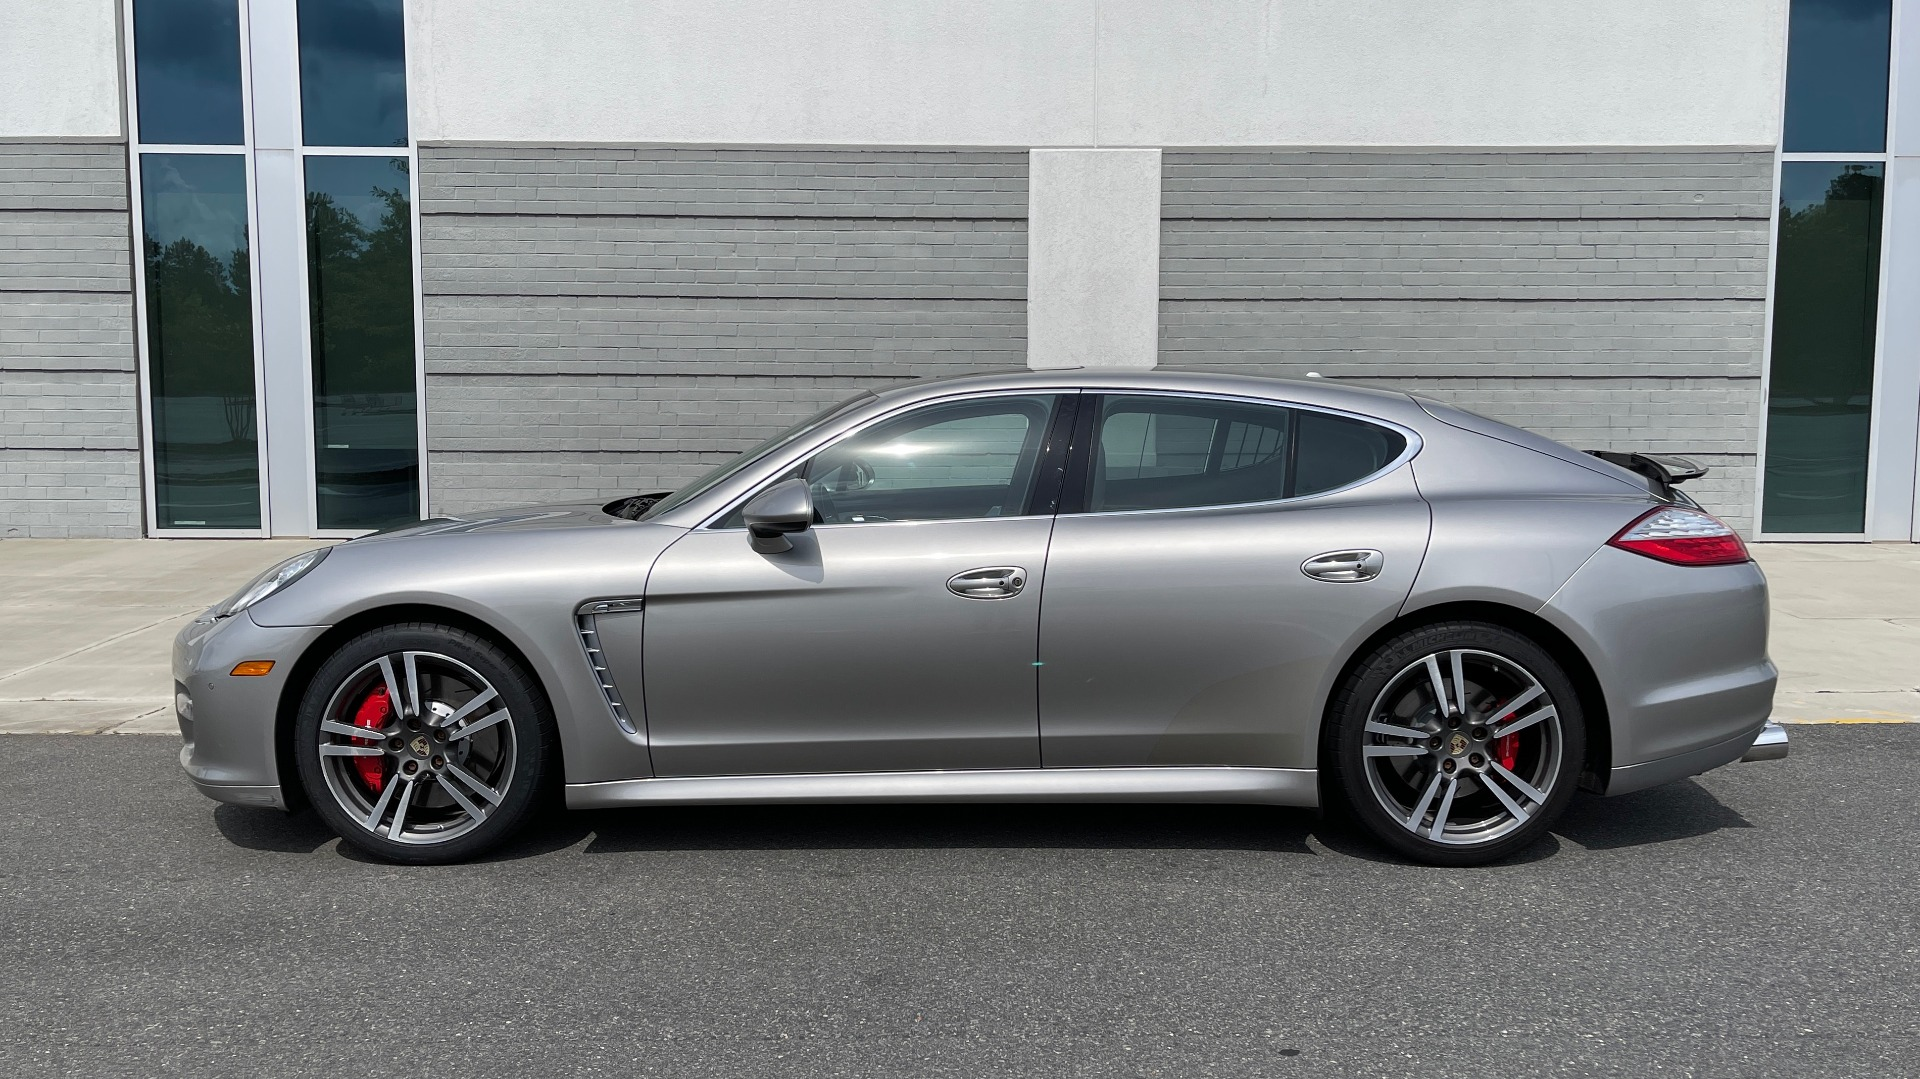 Used 2010 Porsche PANAMERA 4DR HB TURBO / SPORT CHRONO / BOSE / AUTO CLIMATE CONTROL for sale $42,124 at Formula Imports in Charlotte NC 28227 4